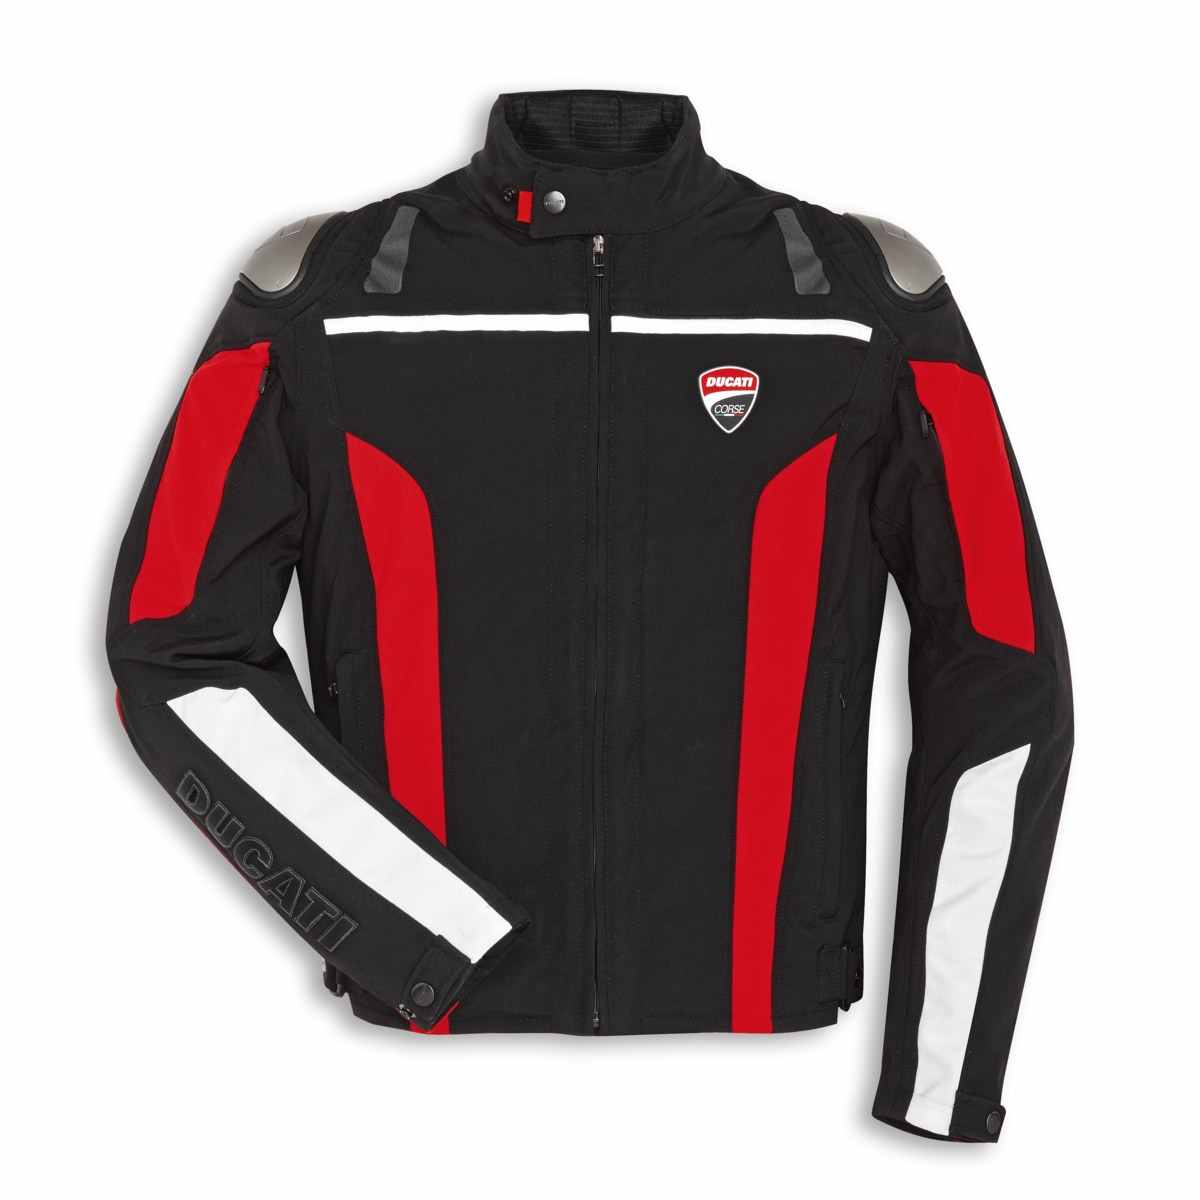 Ducati Corse tex C4 Fabric jacket | Motorcycle wear